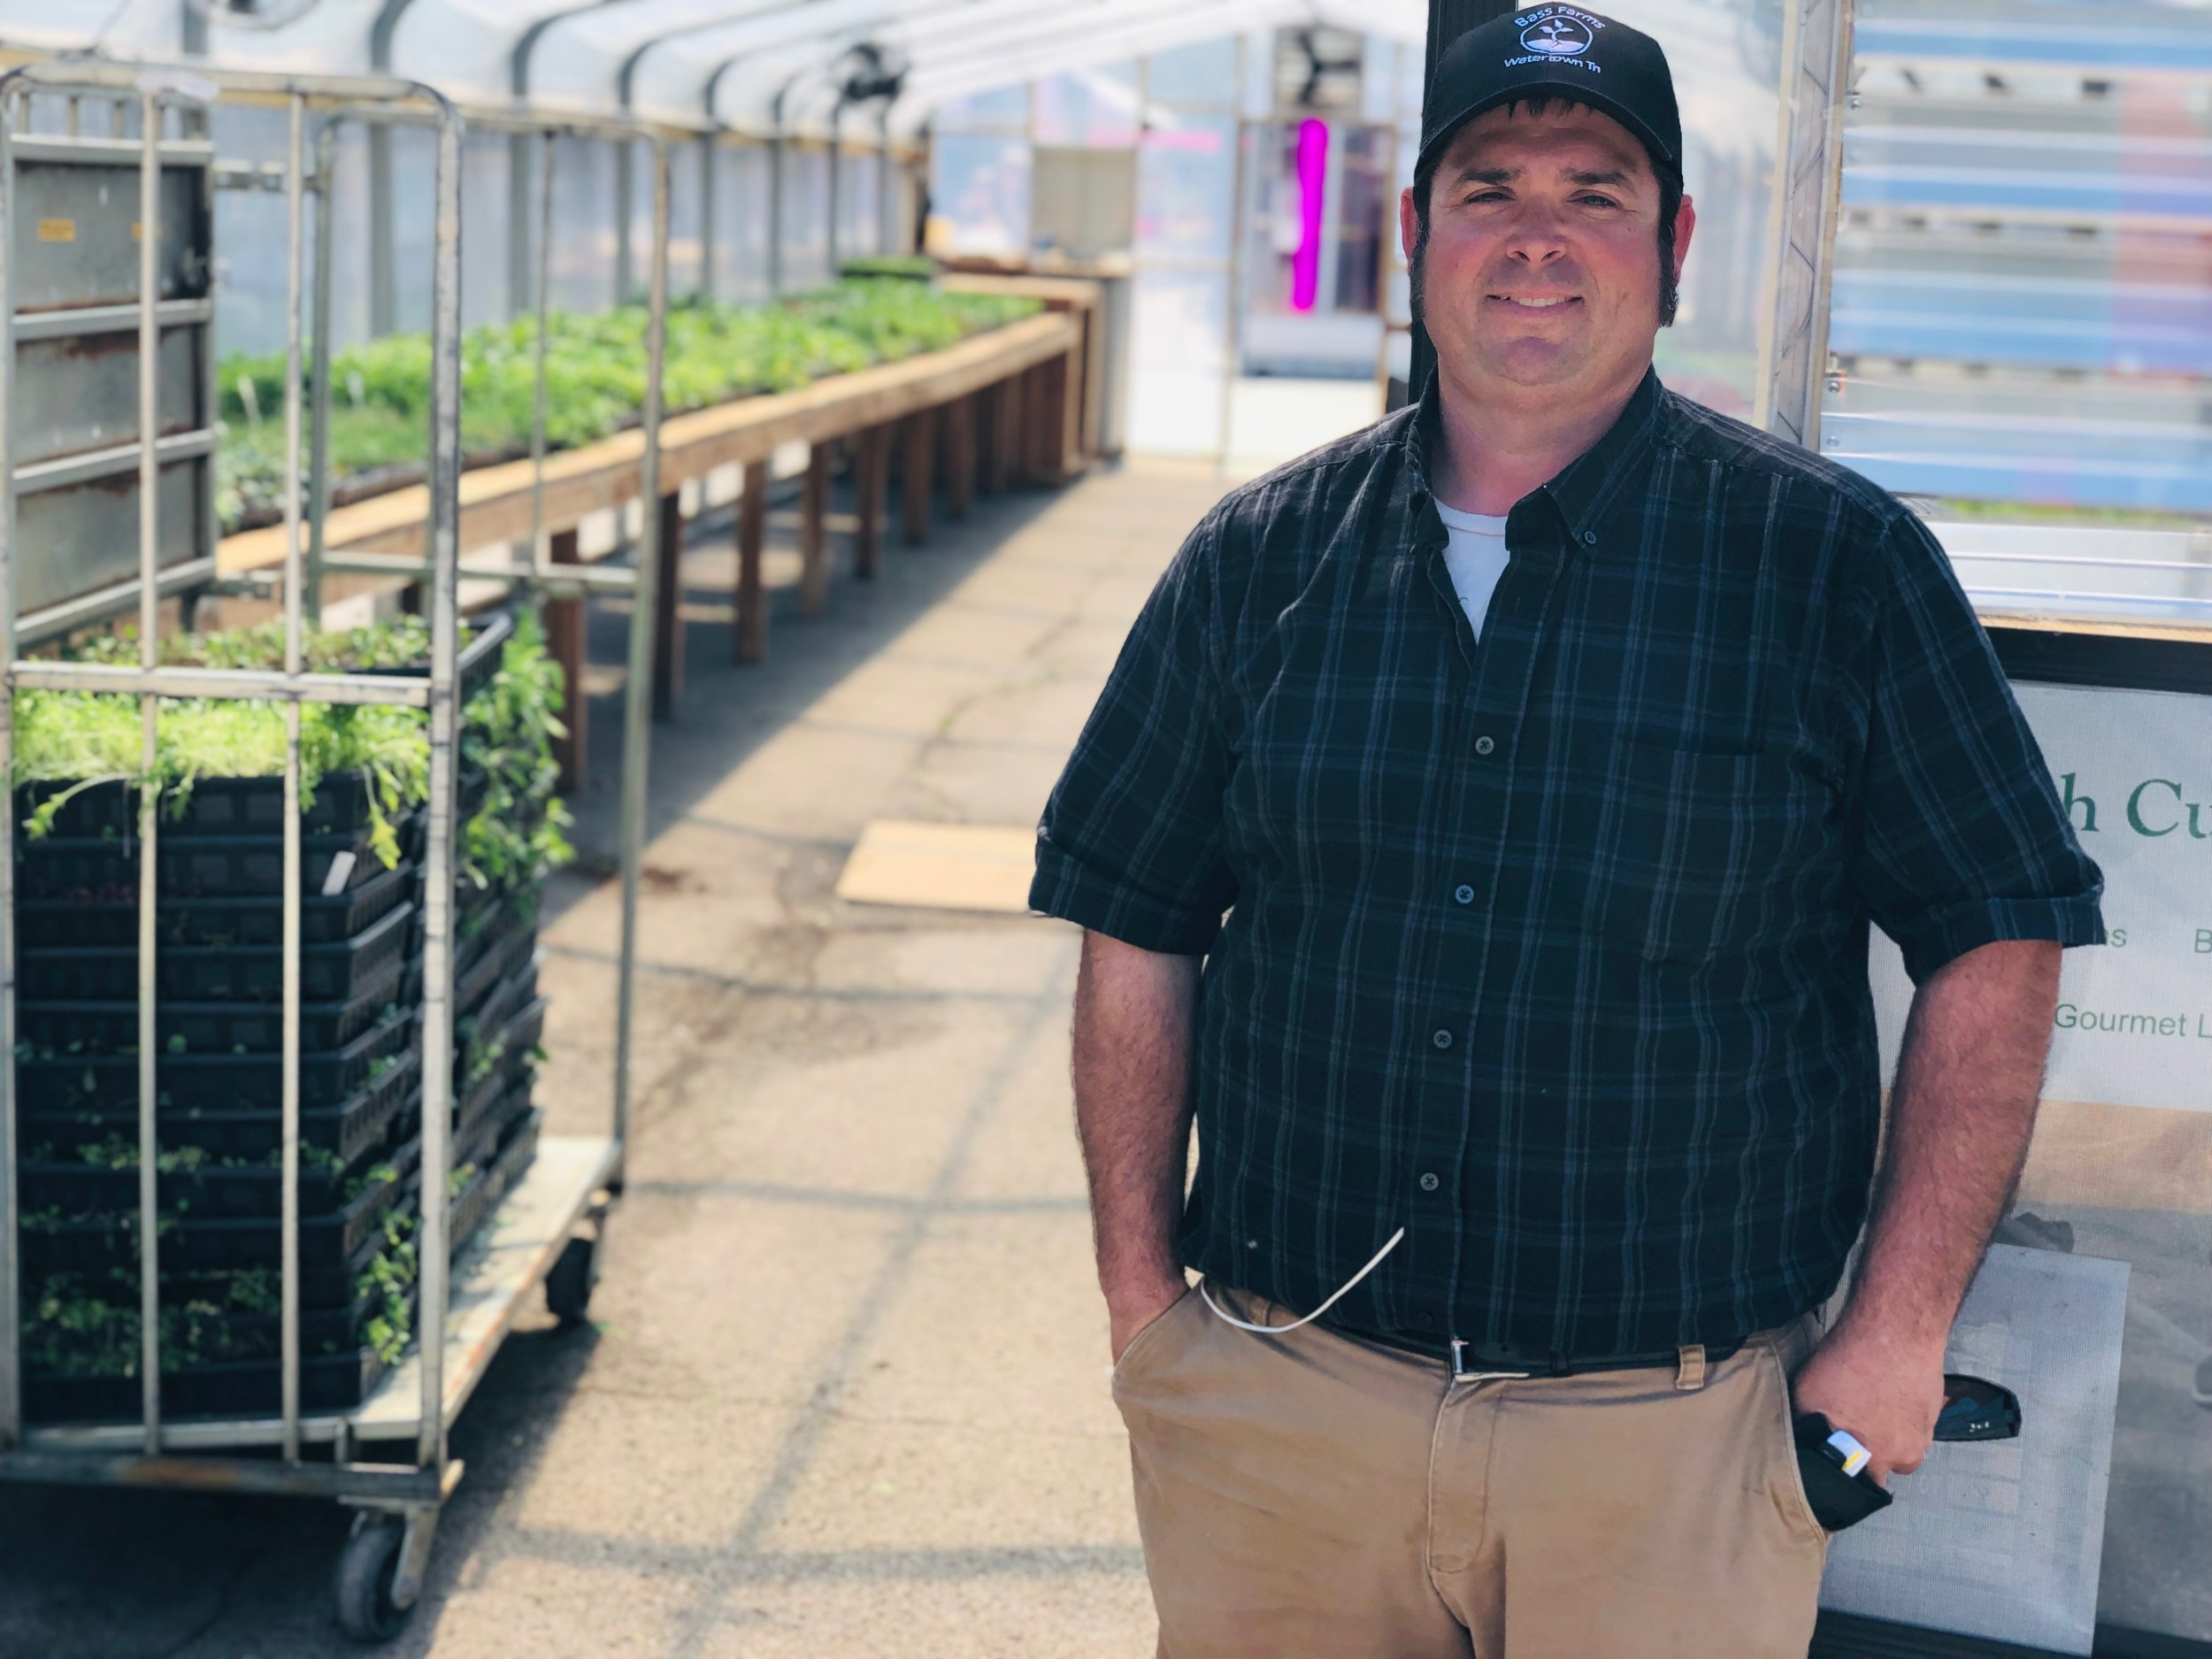 Before coming to the Nashville Farmers' Market, Matthew Bass was selling about 20 trays of micro greens per month. Today he's selling about 250-300 trays per week.